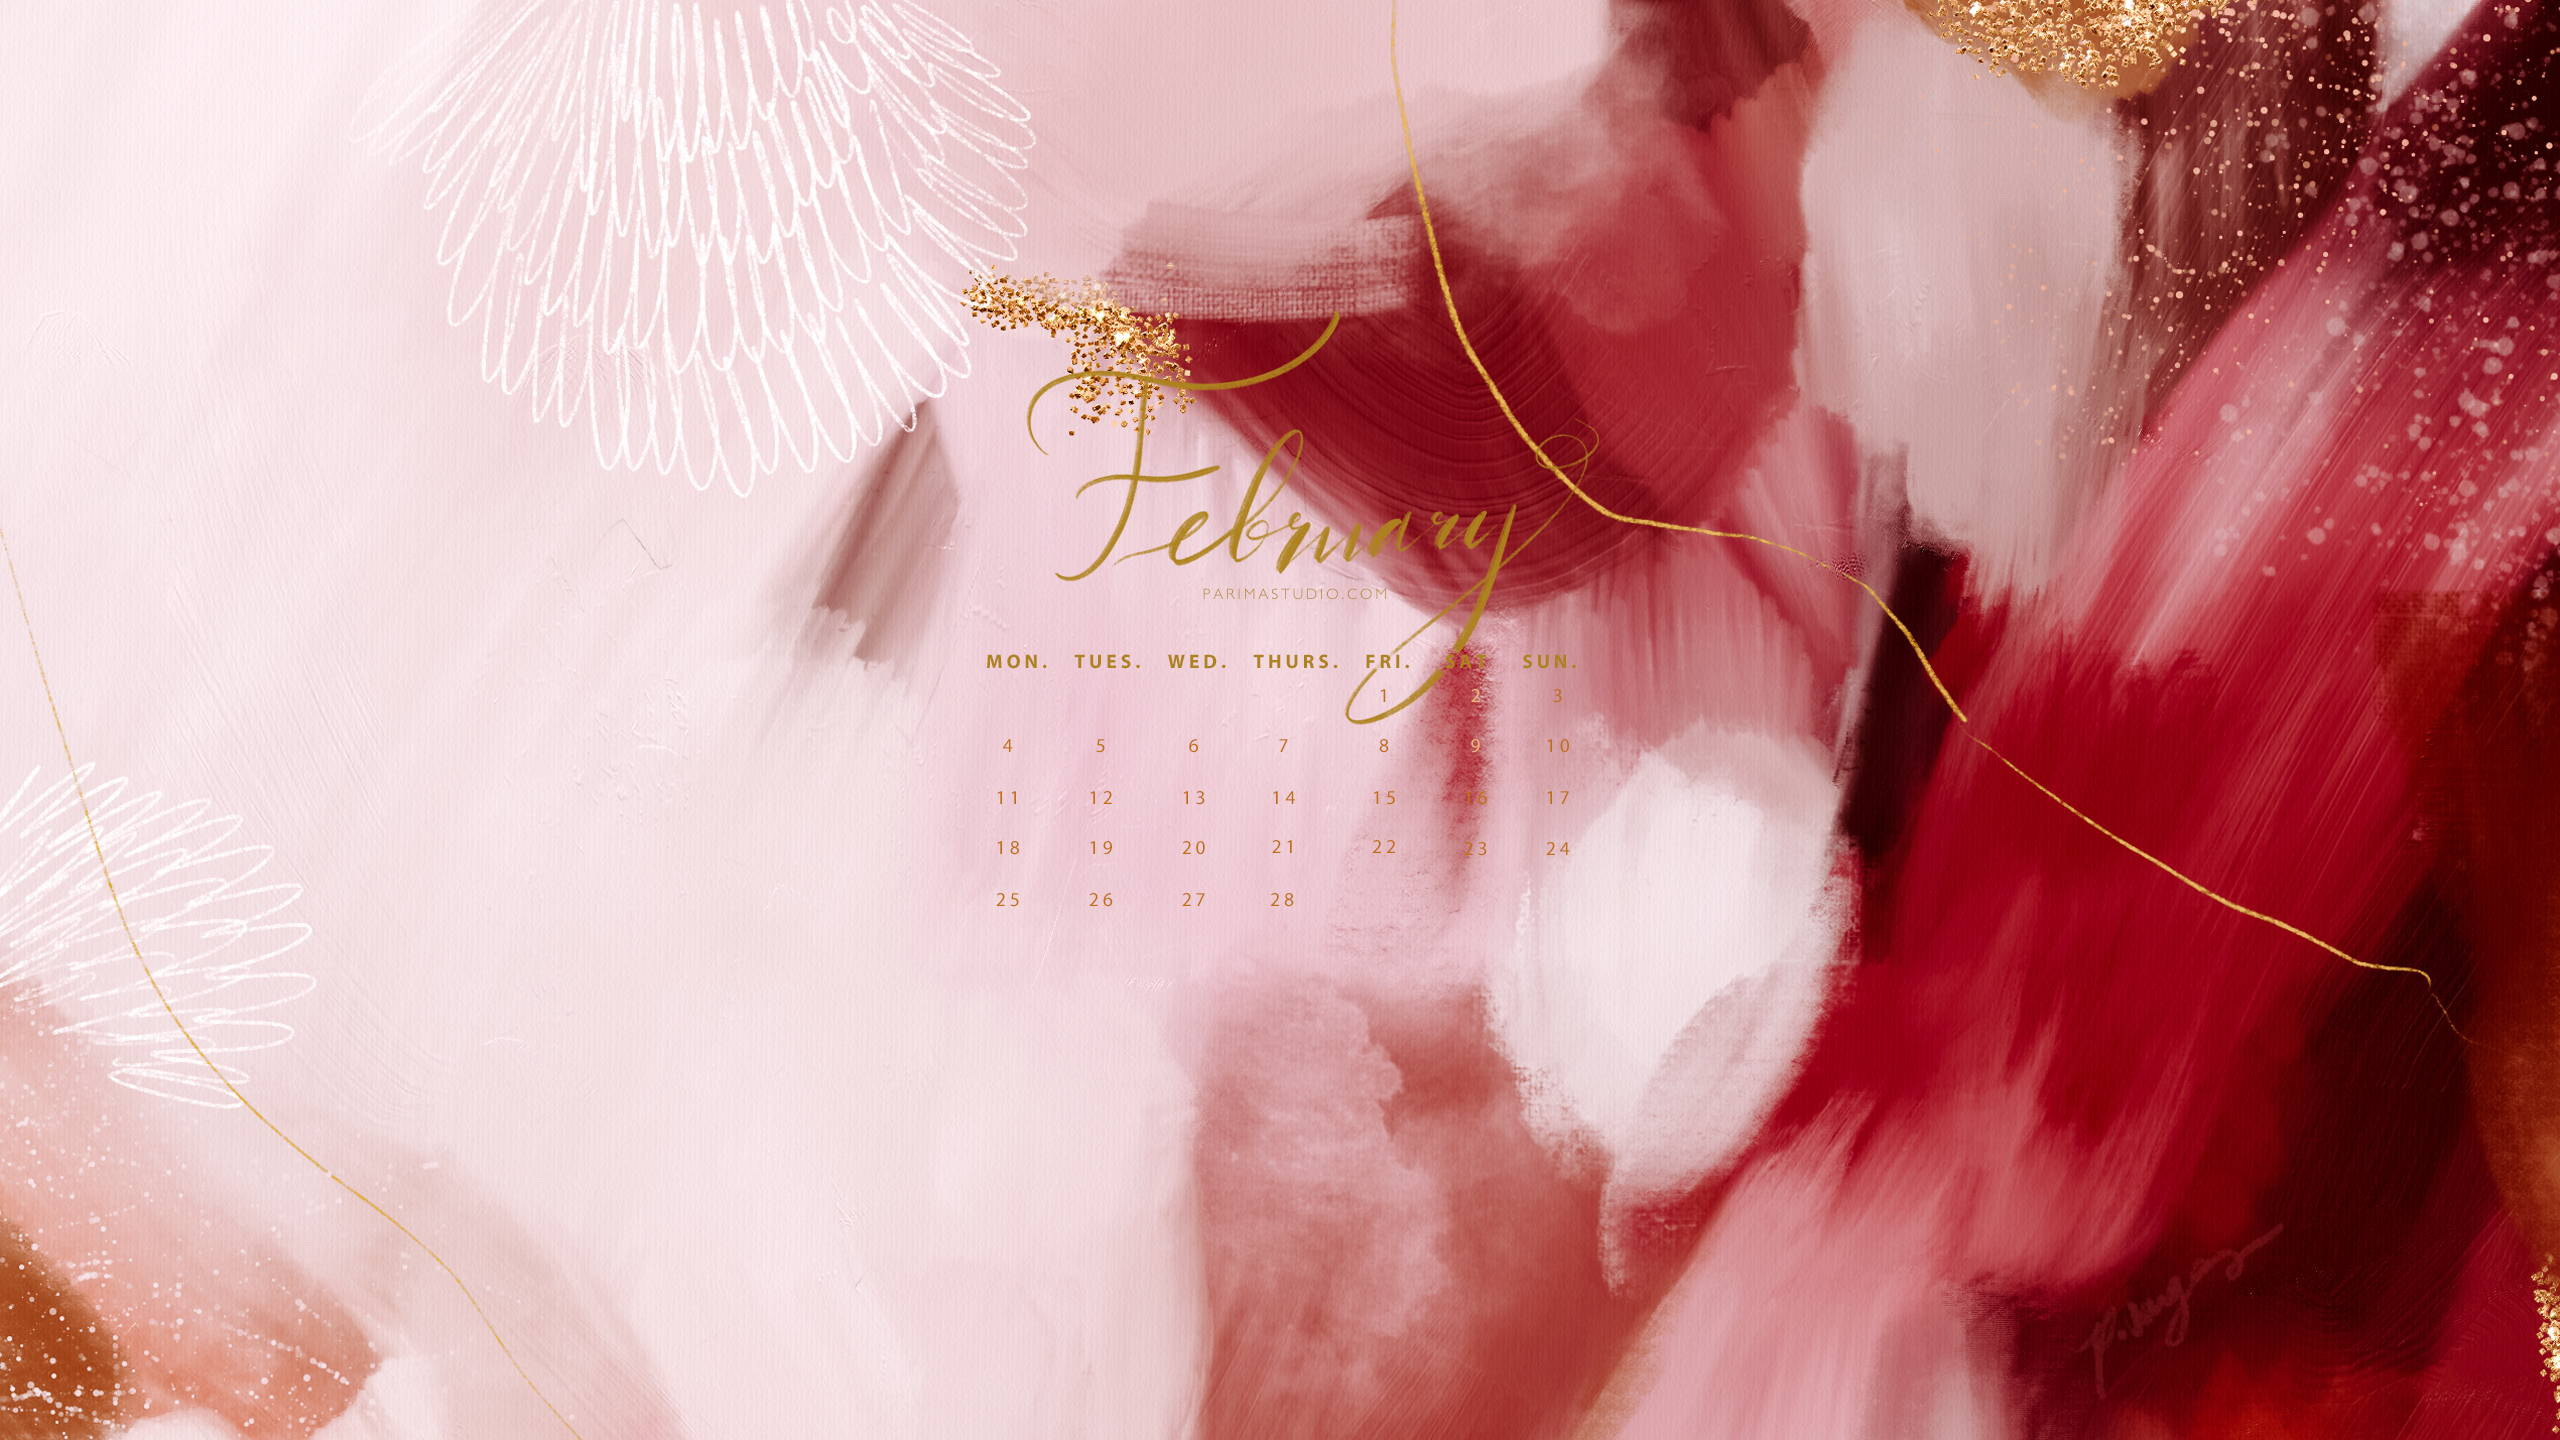 Free calendar and wallpaper downloads for your tech via Parima Studio, abstract art